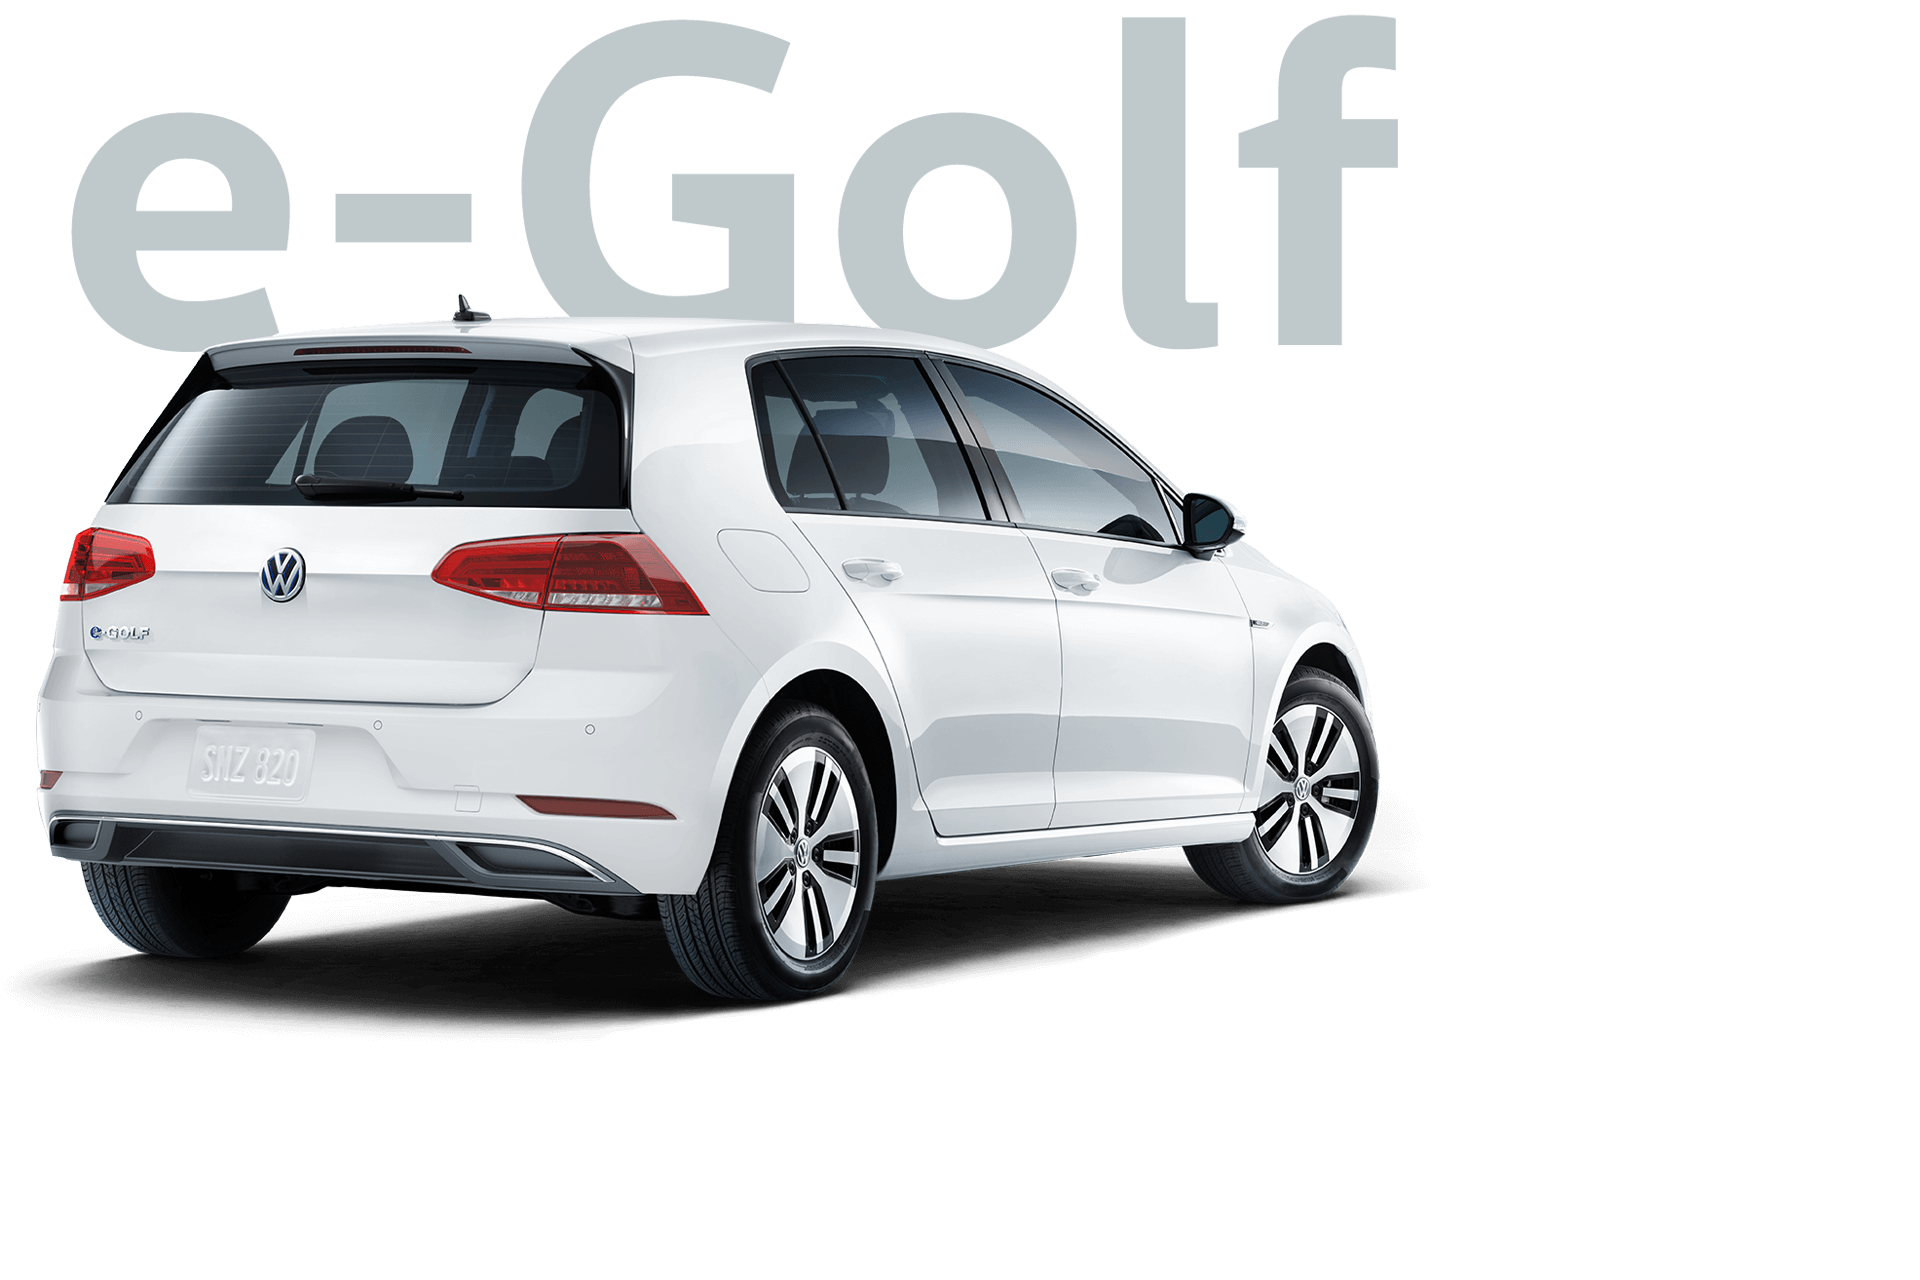 2017 Vw E Golf Electric Car Volkswagen 126 111